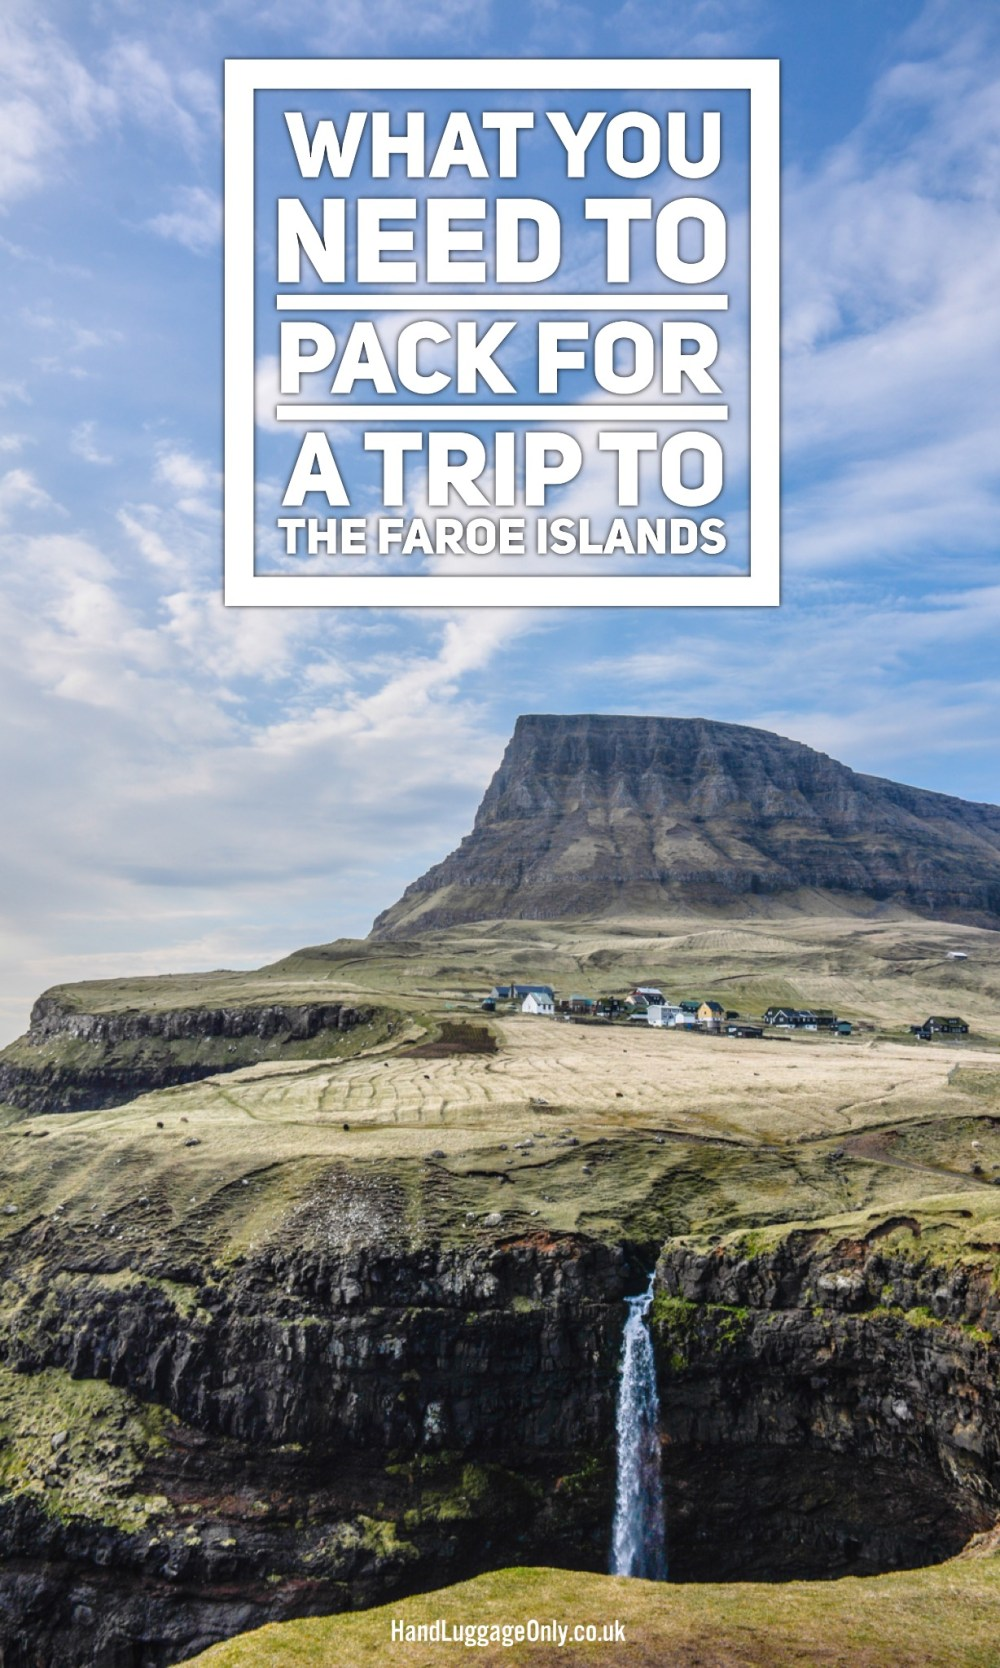 12 Essentials You Need To Pack For A Trip To The Faroe Islands (1)